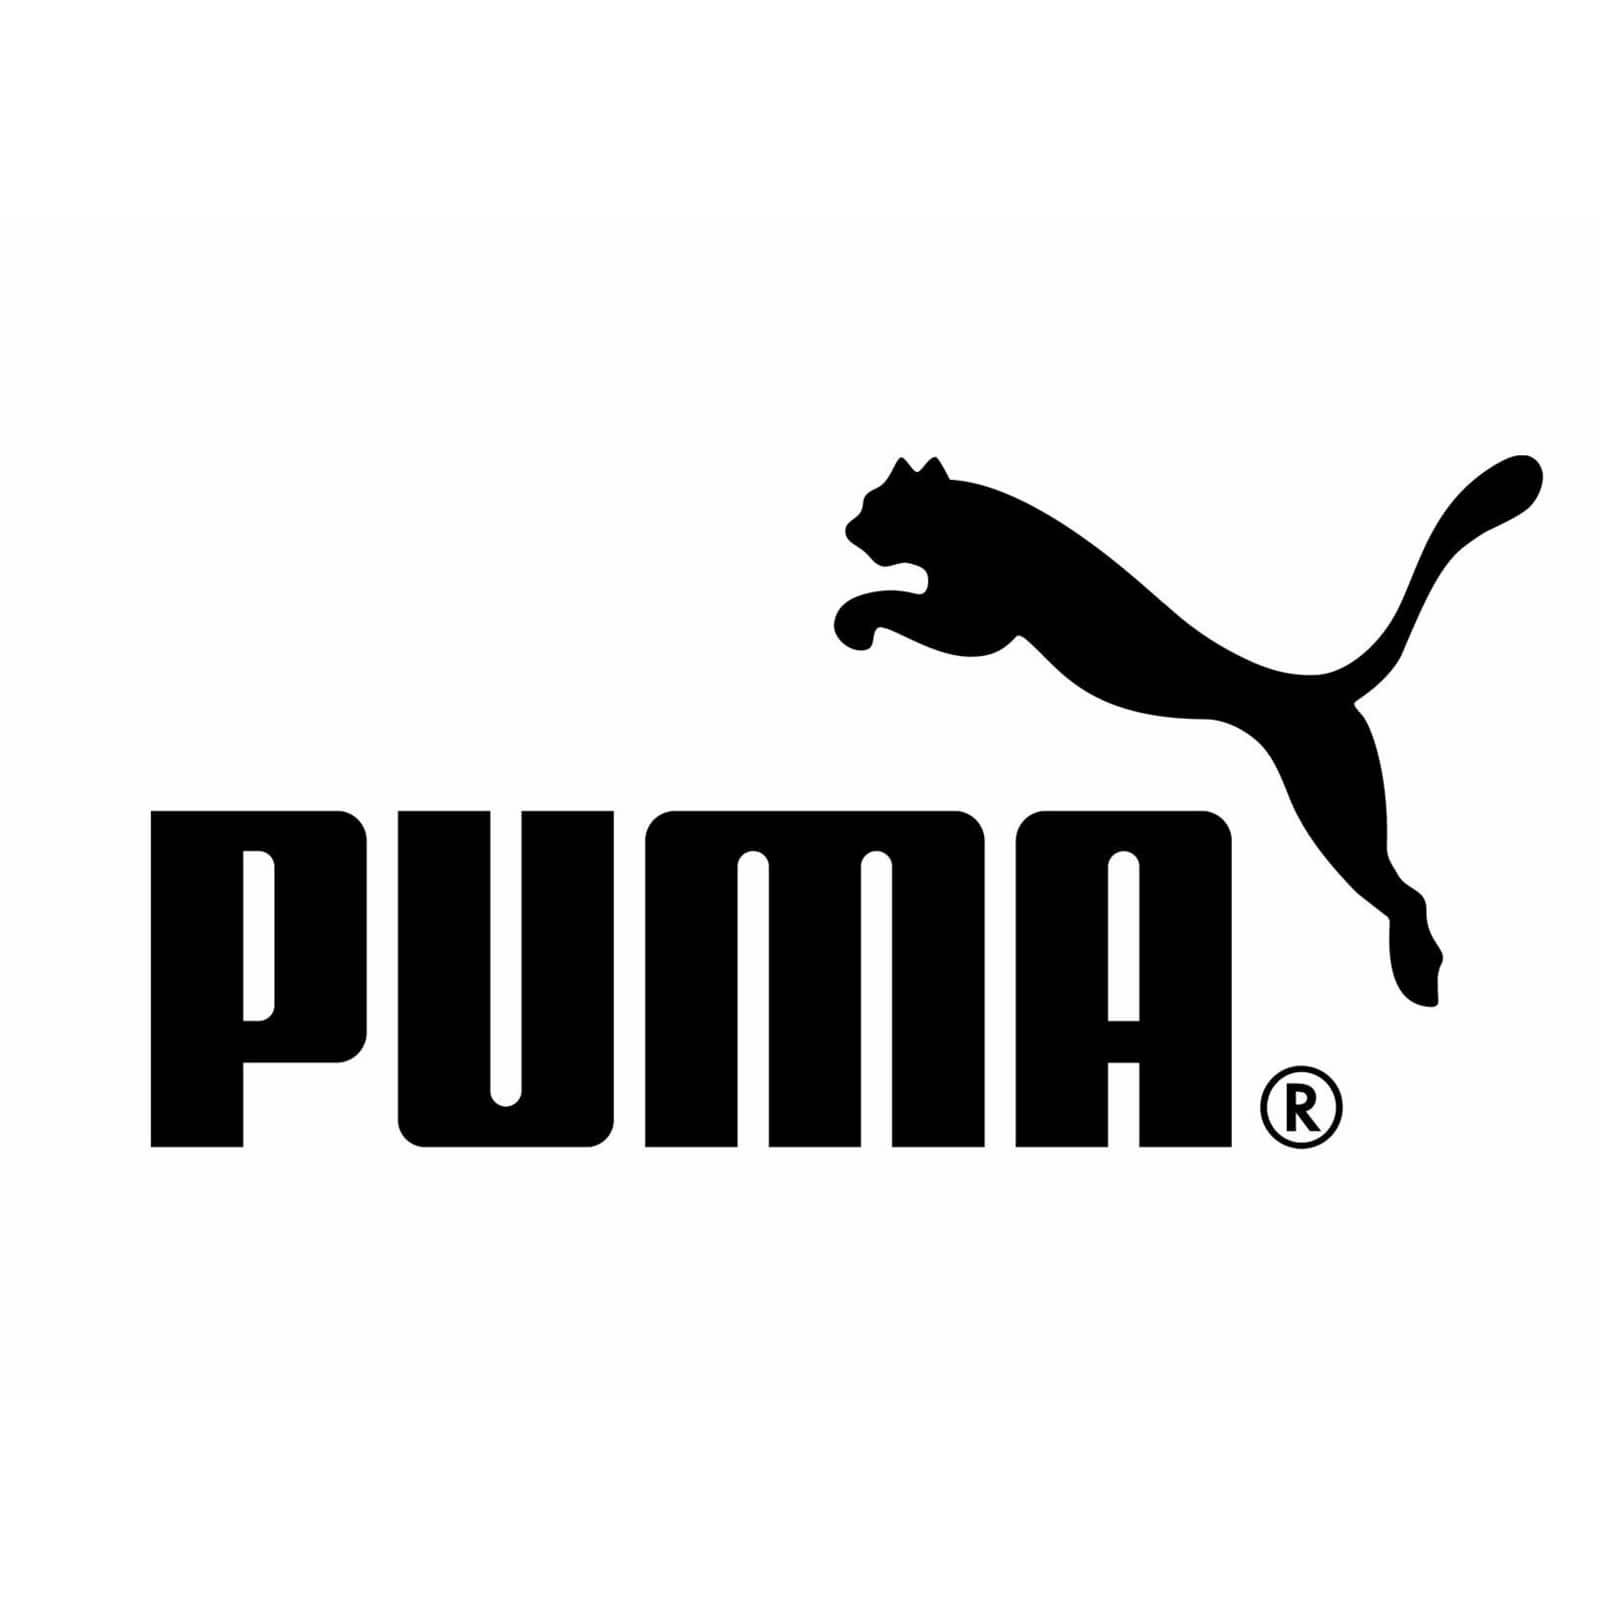 3f05b3bff5 PUMA - Opening Hours - 1555 Talbot Rd, Lasalle, ON